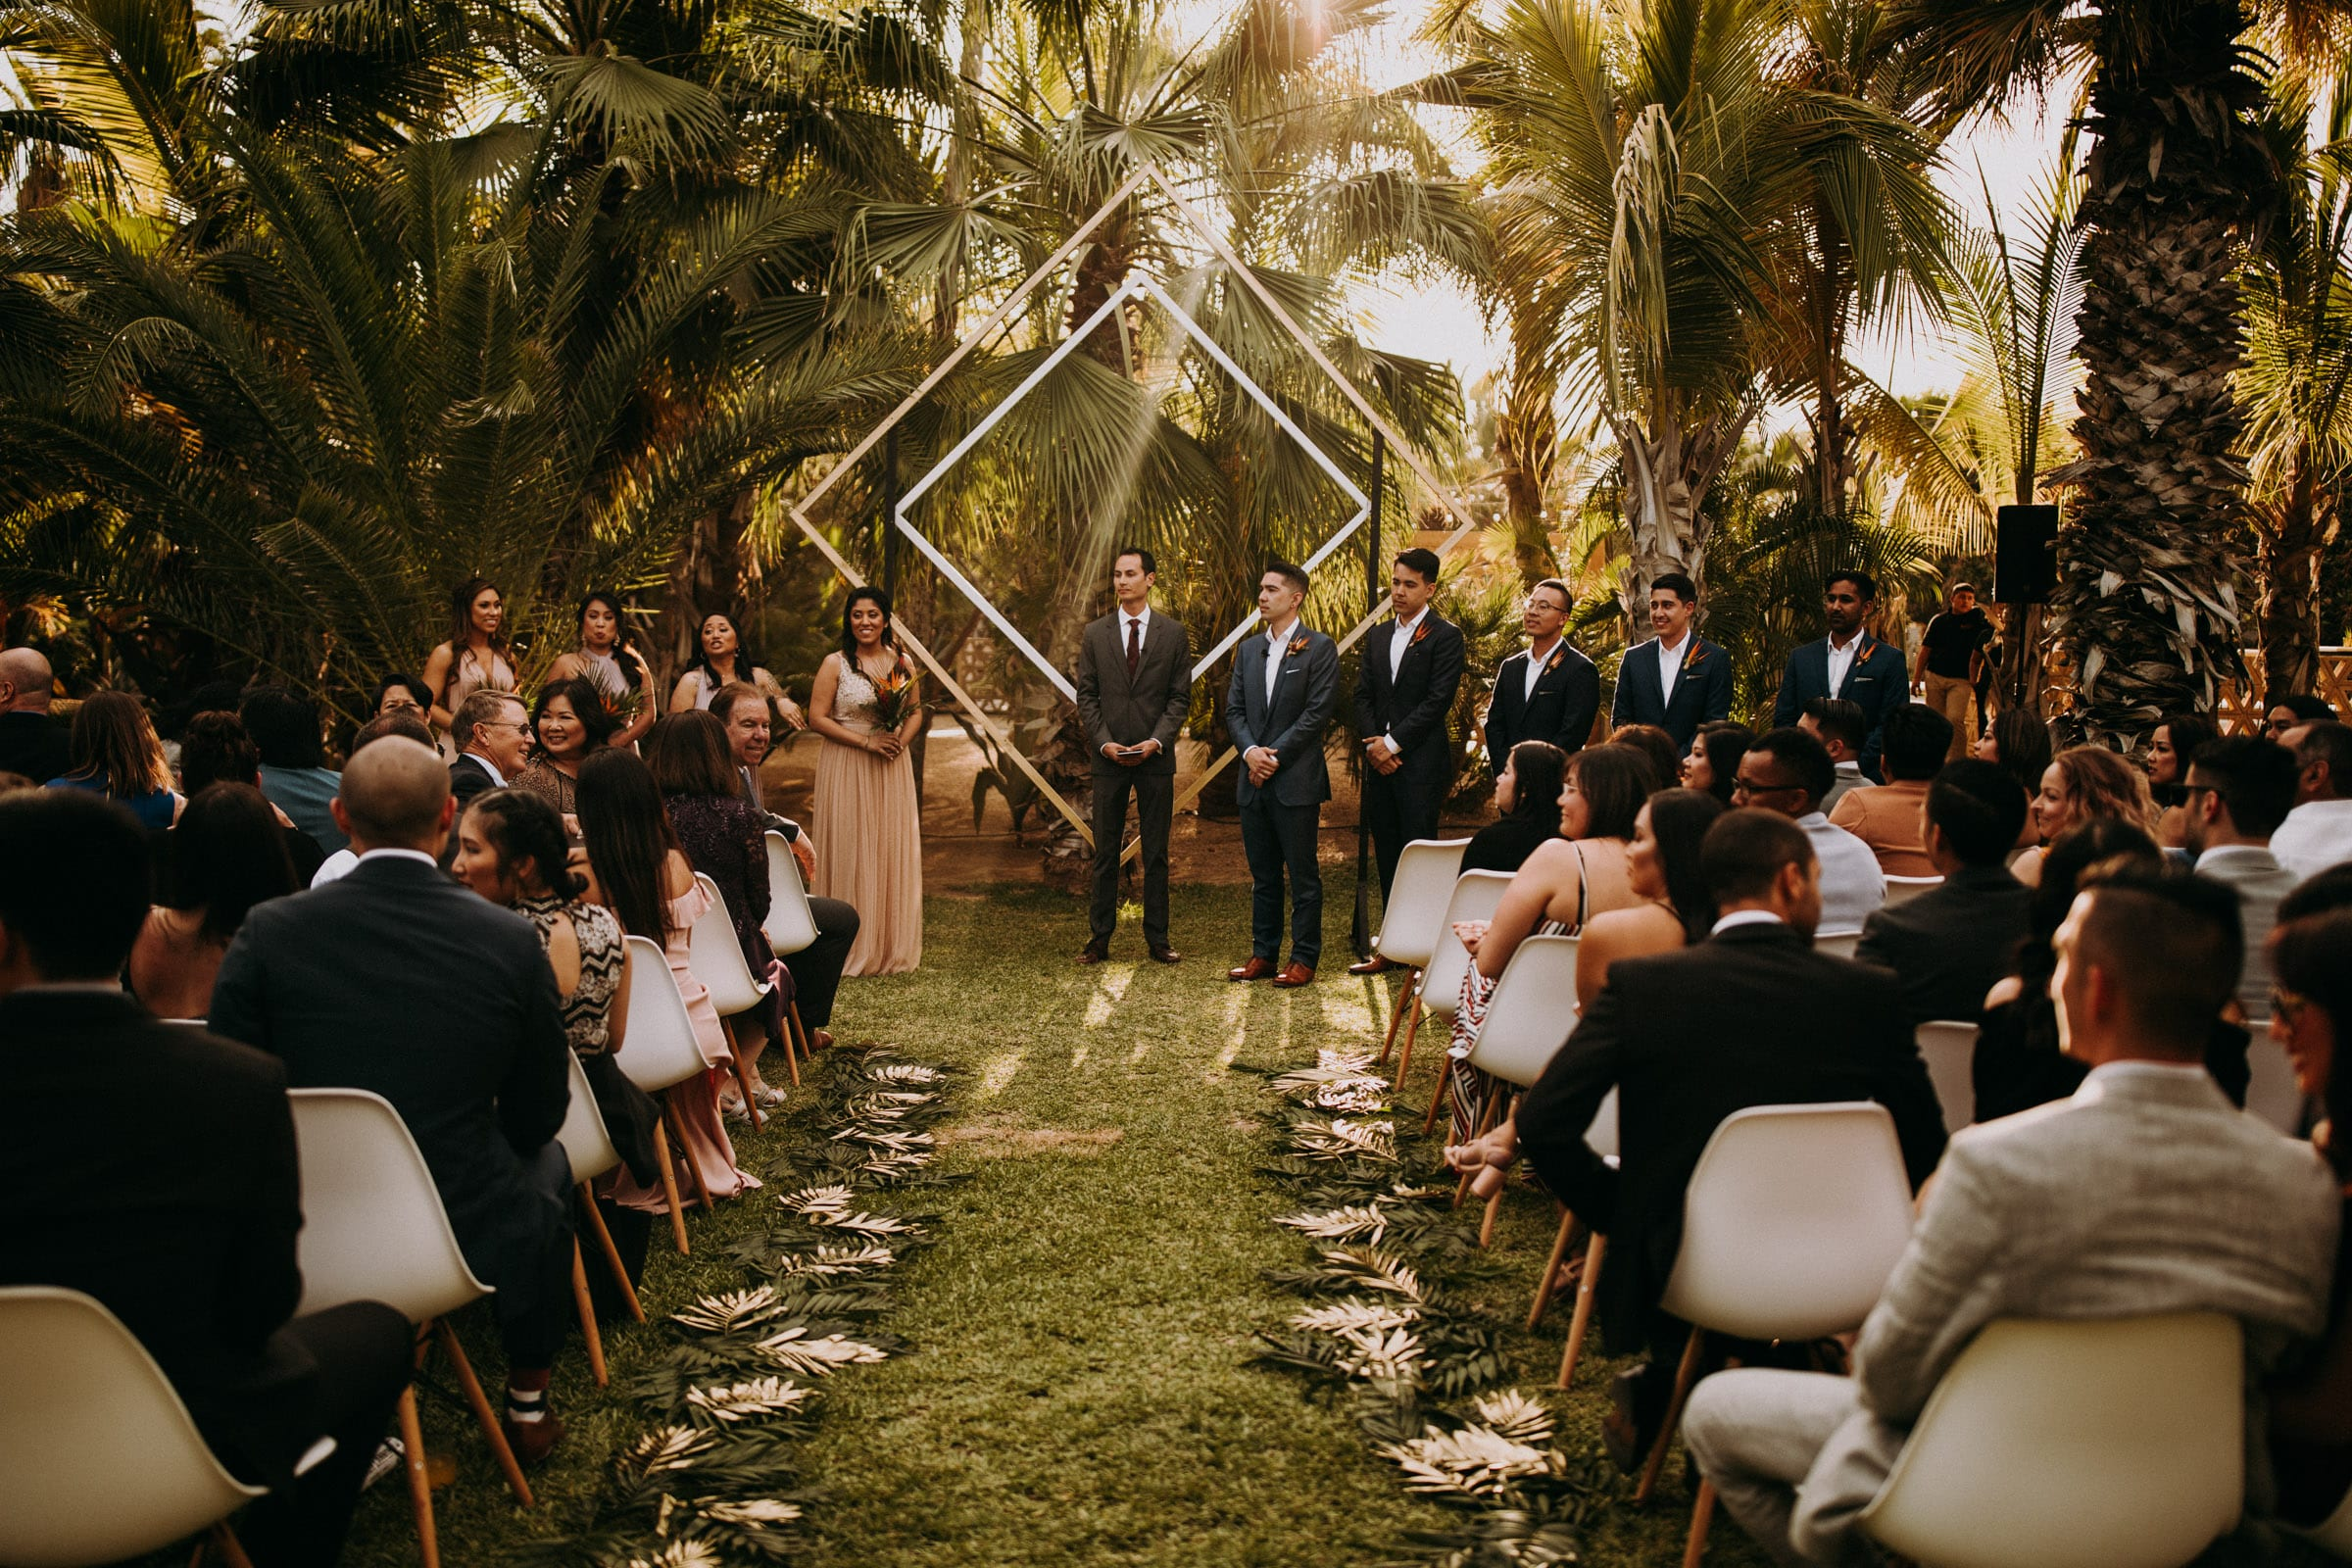 A groom is standing at the end of an aisle with his wedding guests next to him at the San Jose Del Cabo Wedding.